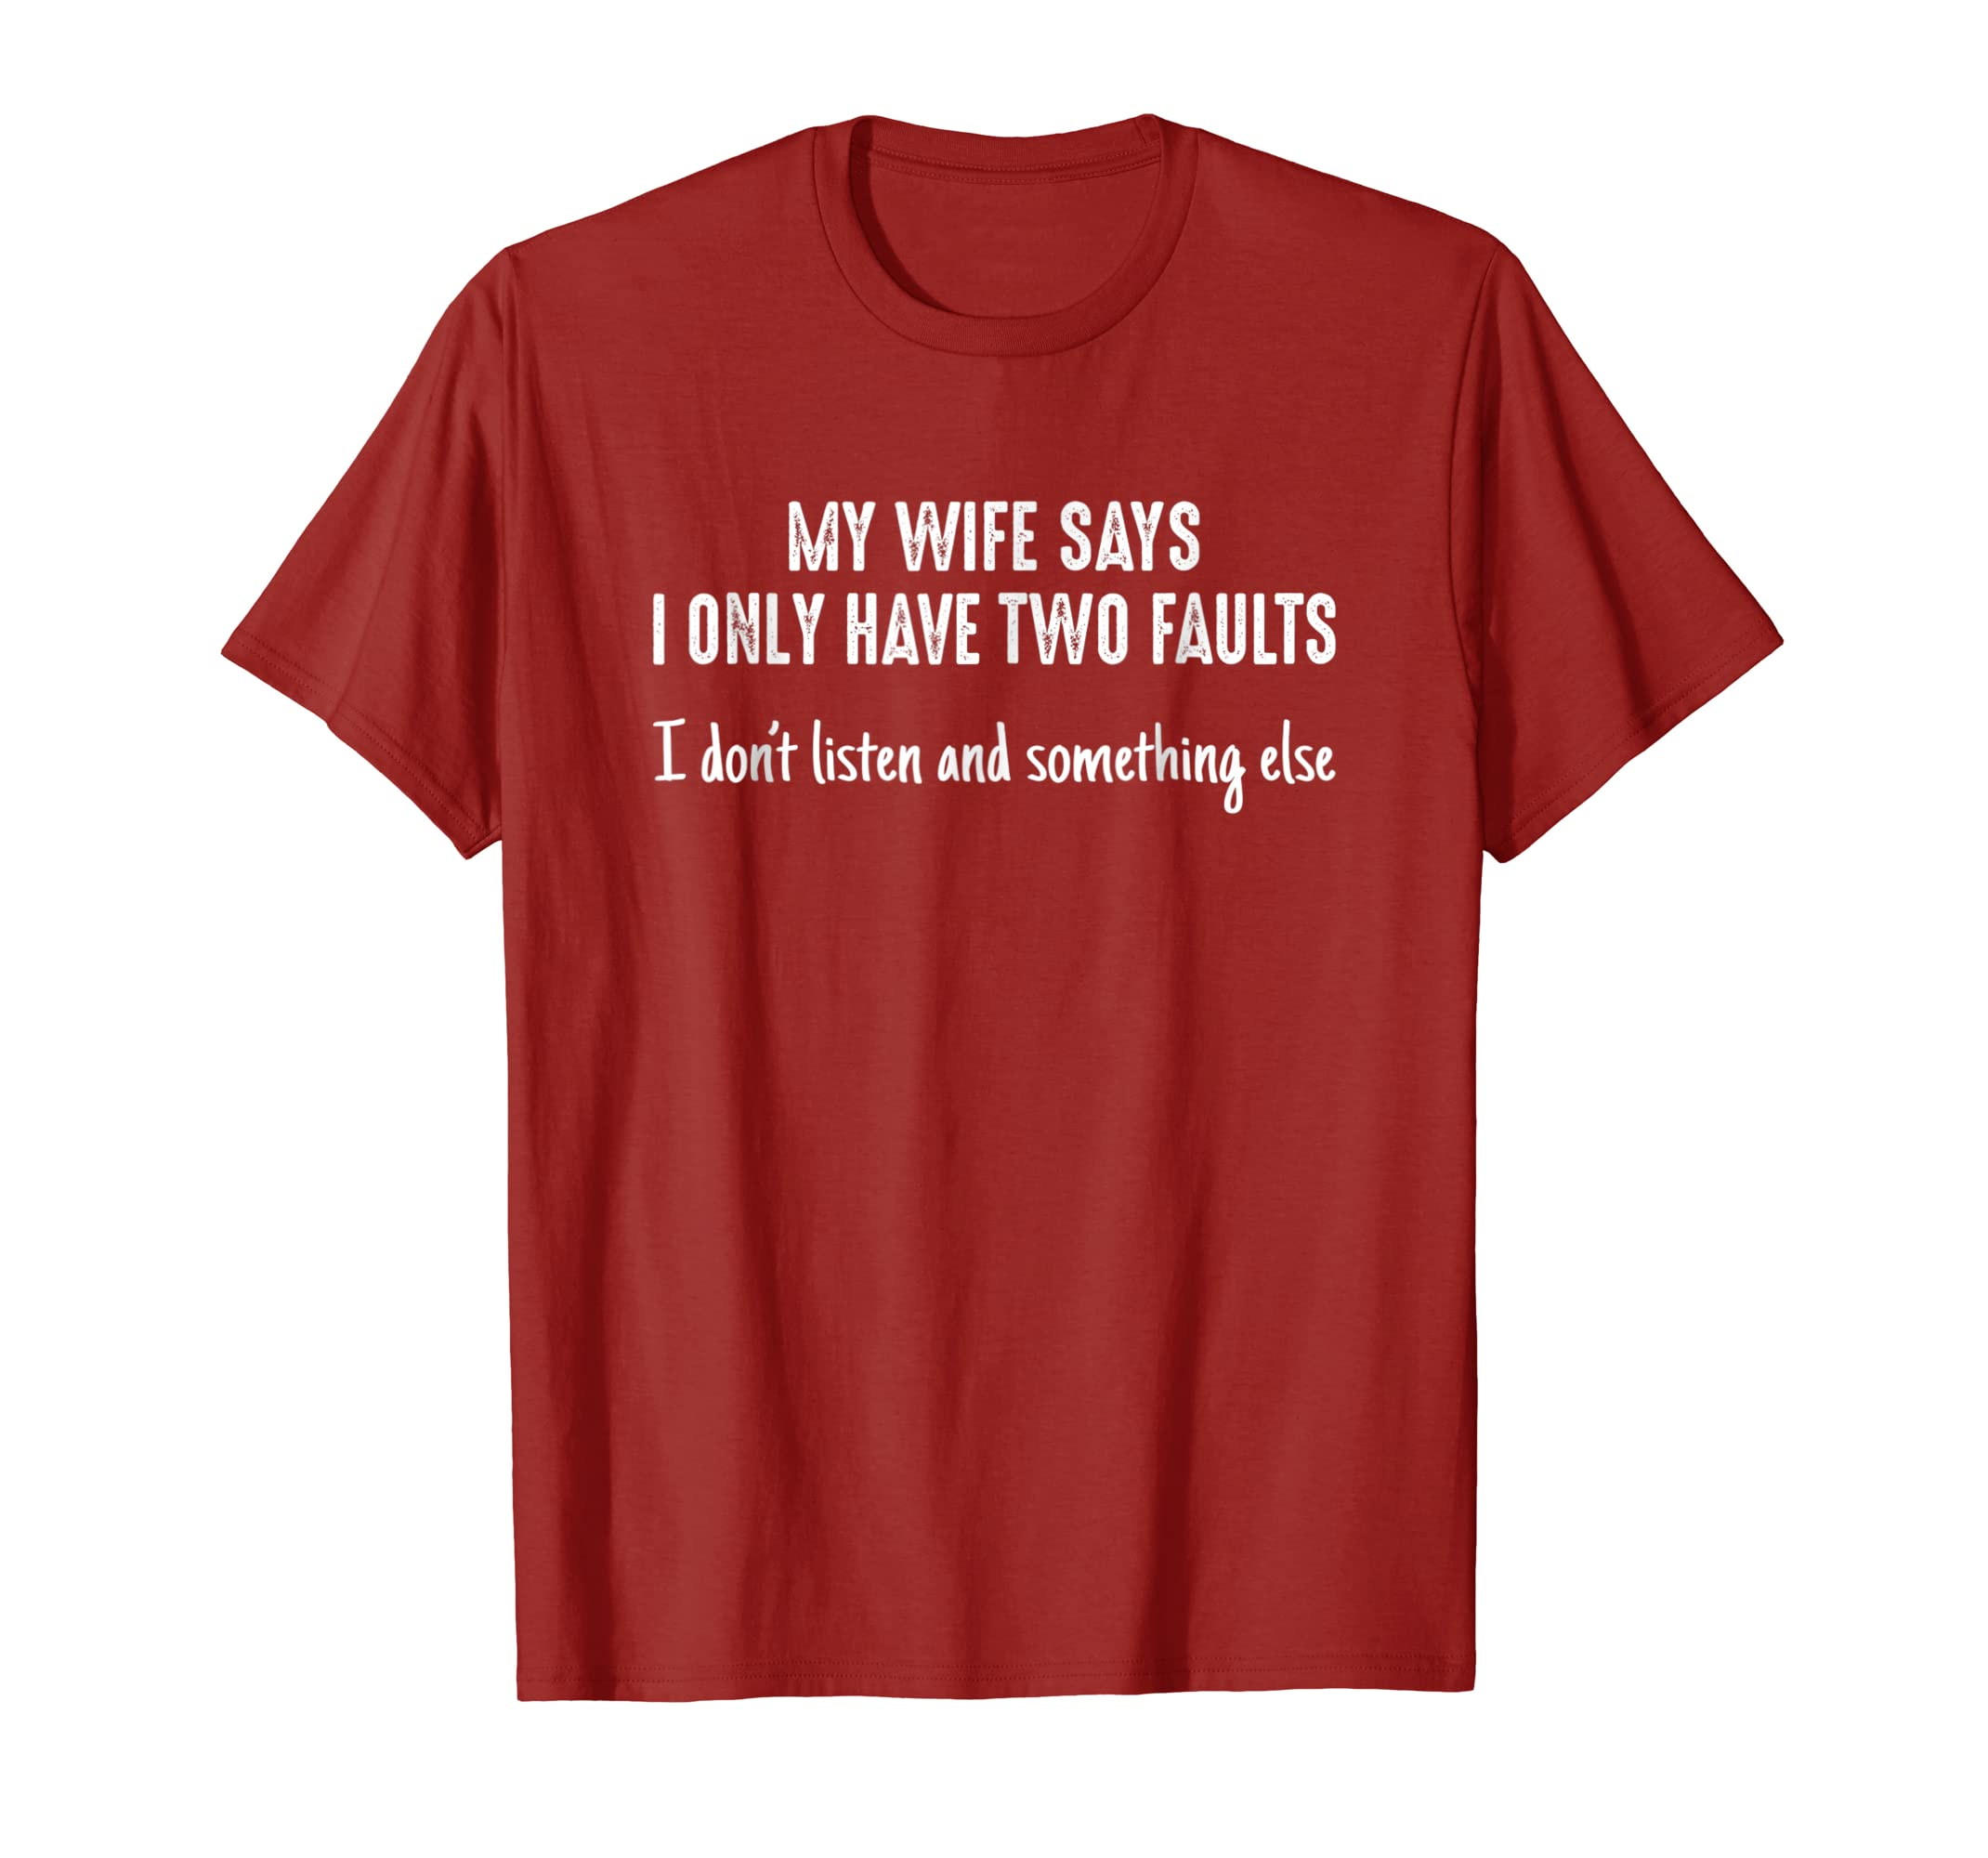 My Wife Says I Only Have Two Faults Shirt-Teesml